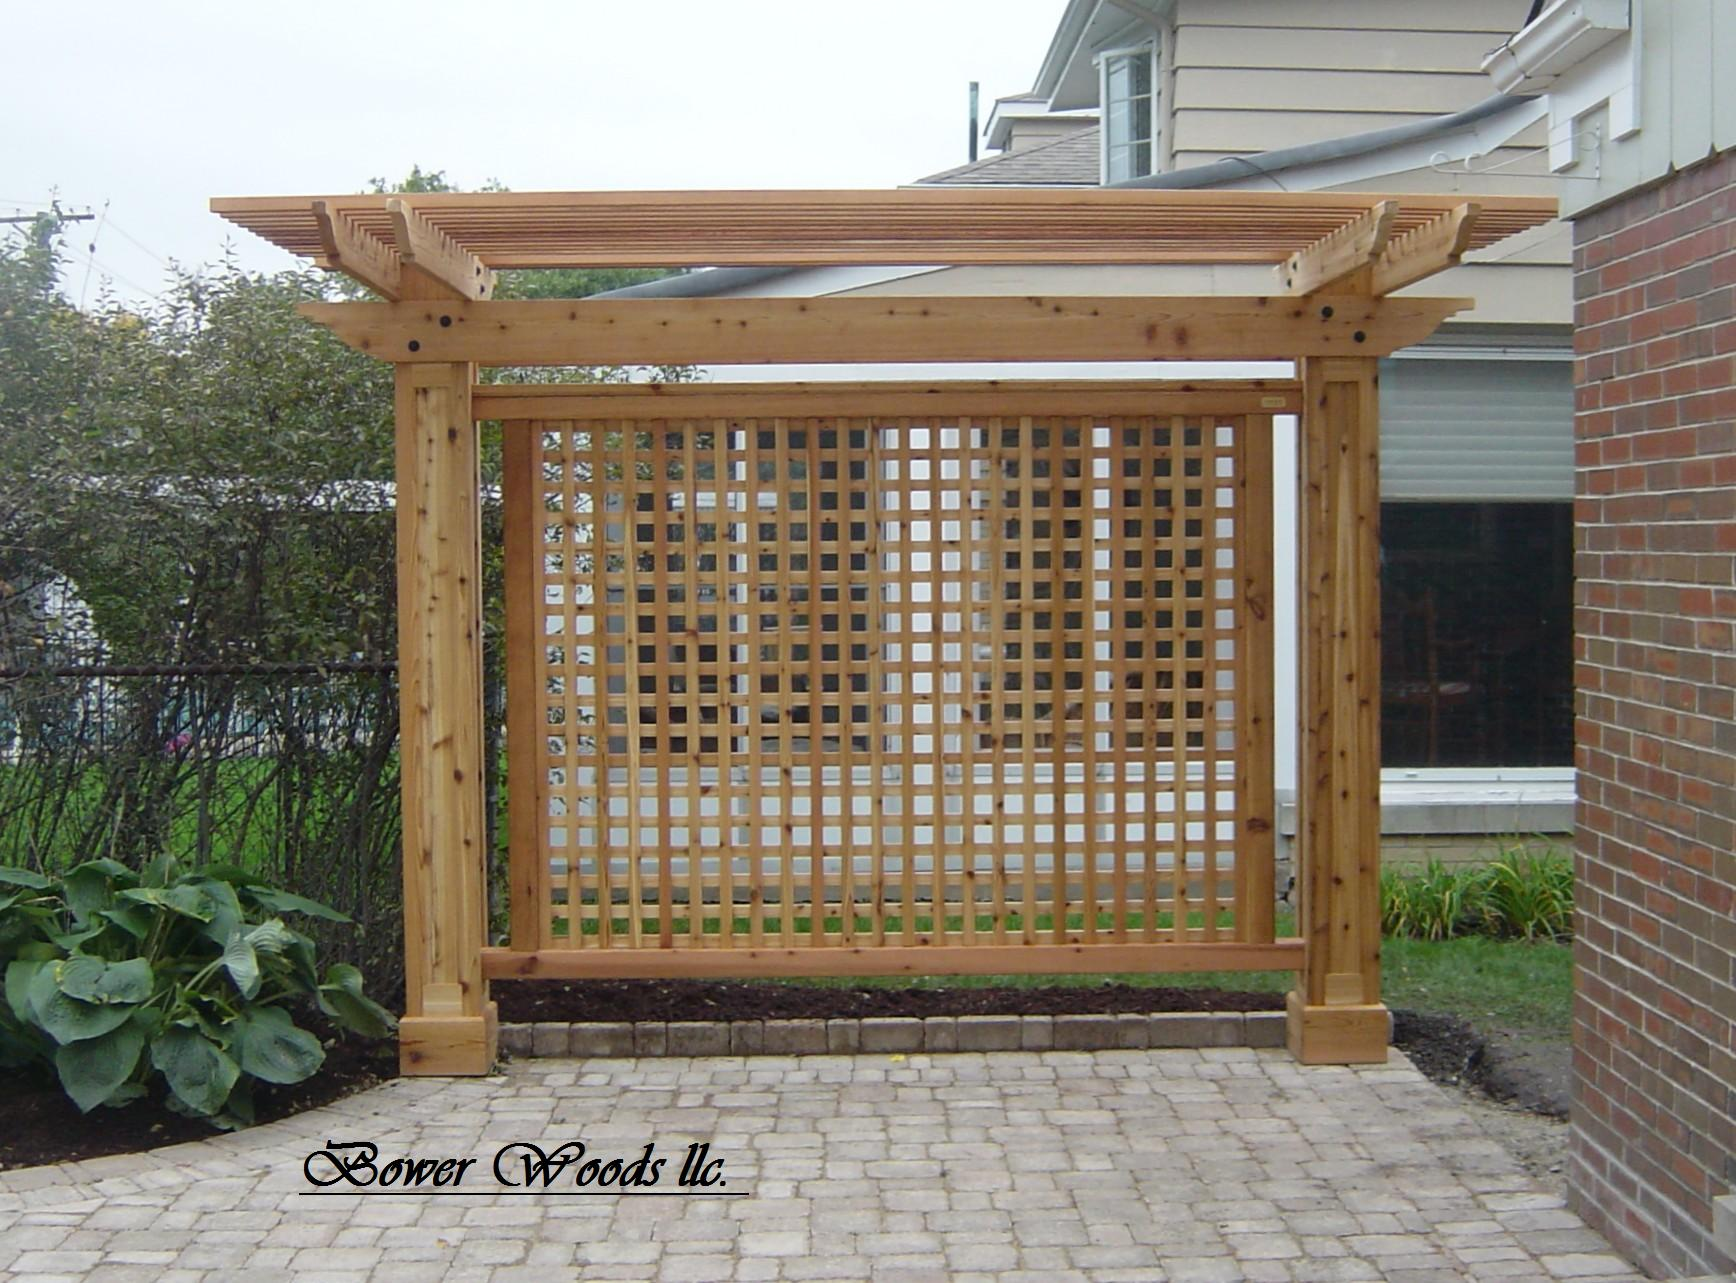 Bower woods llc custom garden structures trellis for Custom backyard designs